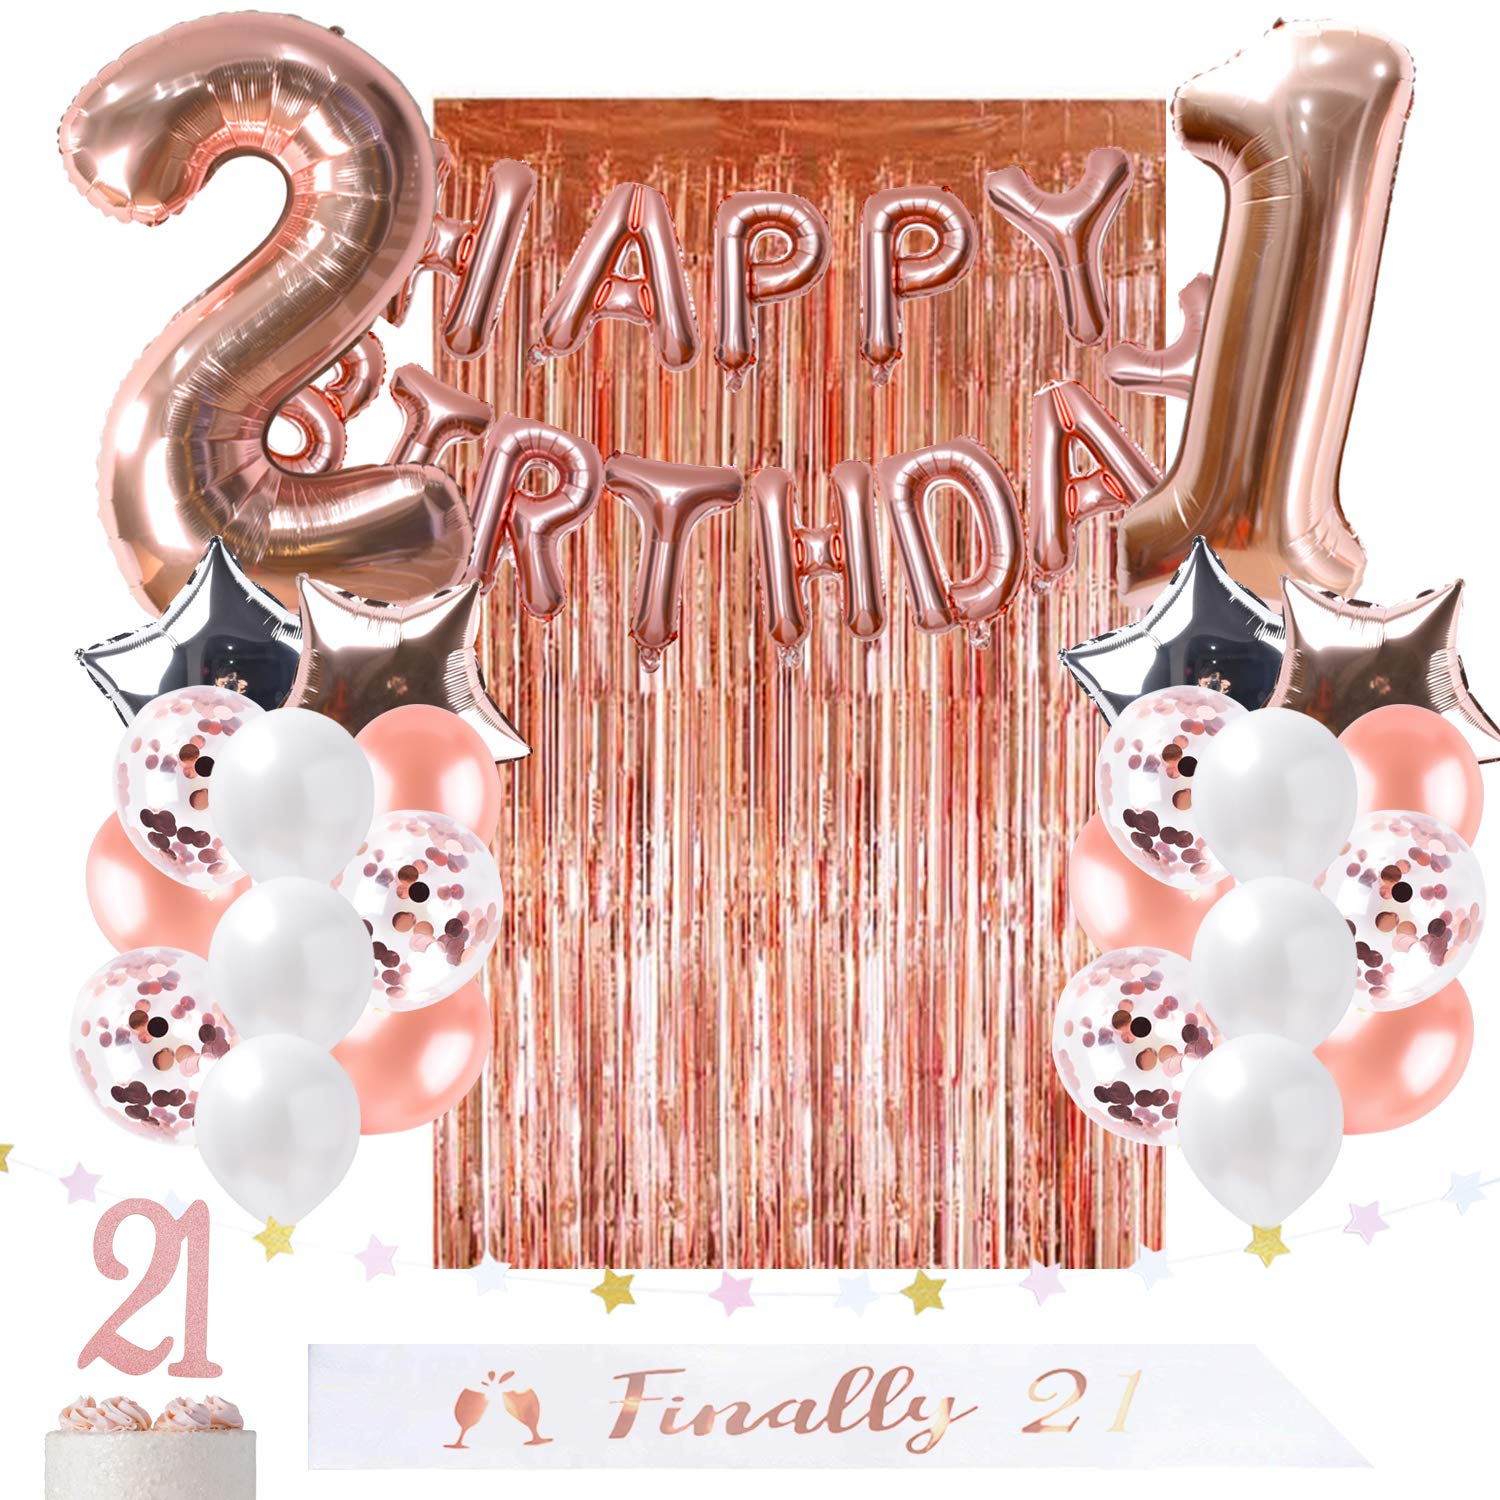 Amazon OUGOLD 21st Birthday Decorations Rose Gold Party Supplies For Her Finally Legal 21 SashFoil Happy Balloon Curtain Backdrop Props Or